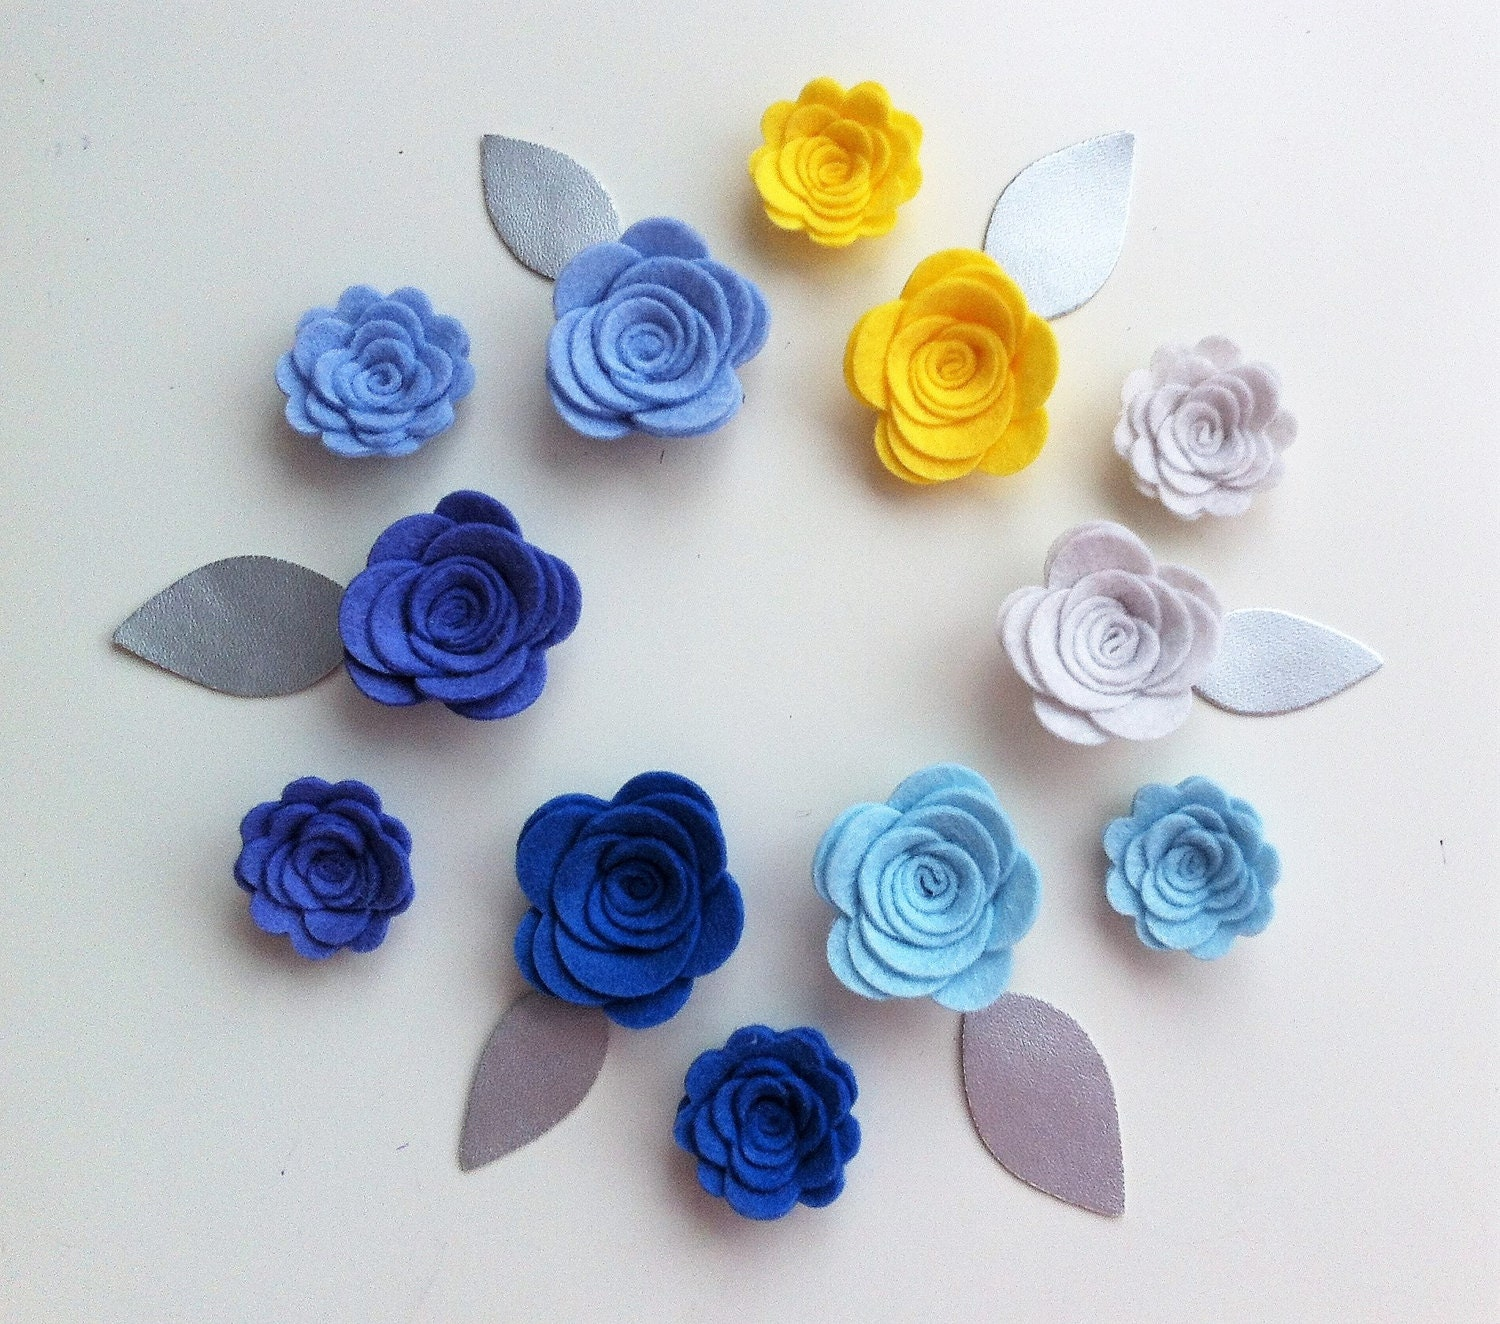 12 hand made blue felt 3d flowers roses silver leaves for How are blue roses made